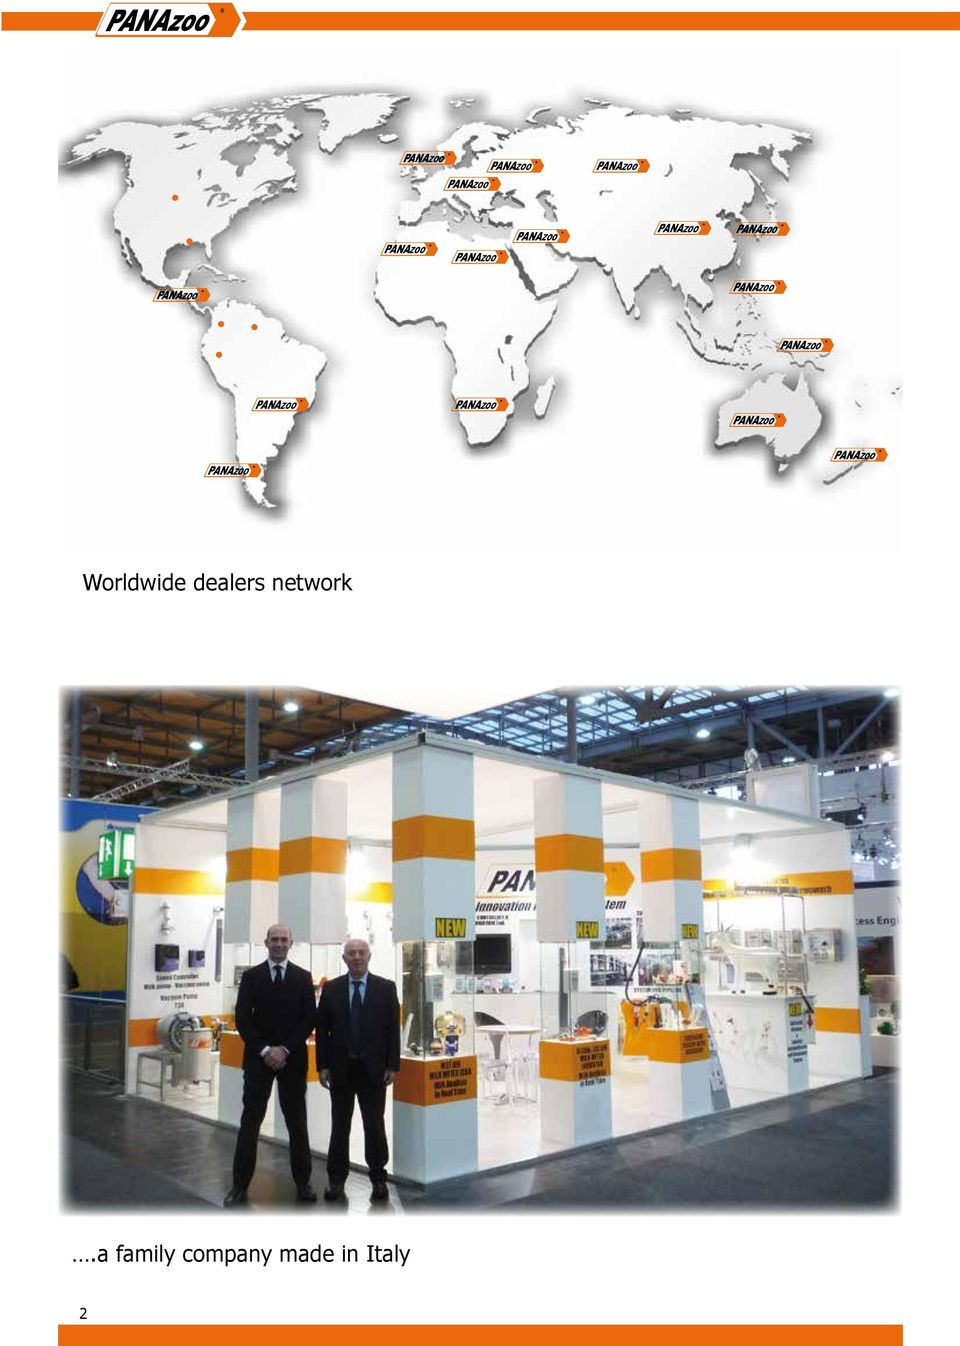 Worldwide dealers network.